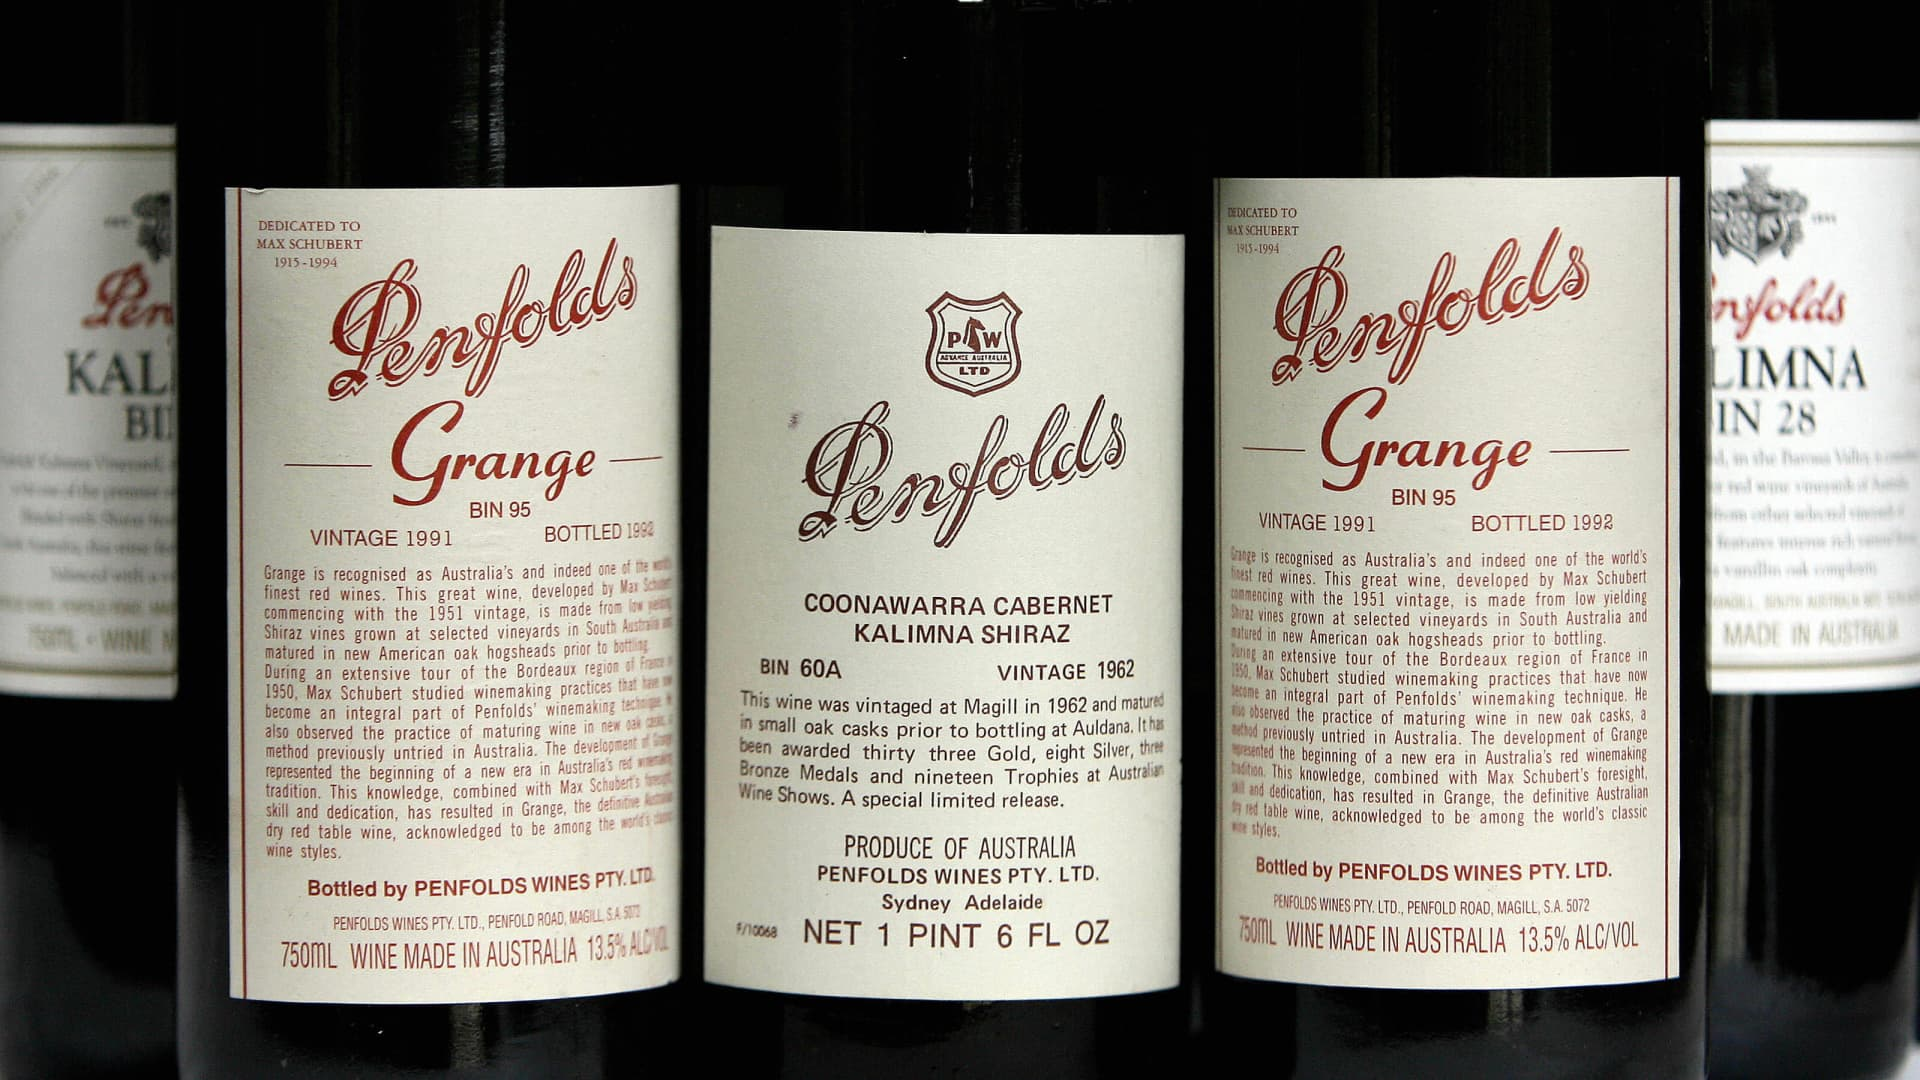 Penfolds Grange red wines at a special re-corking clinic in Sydney, July 12, 2006.